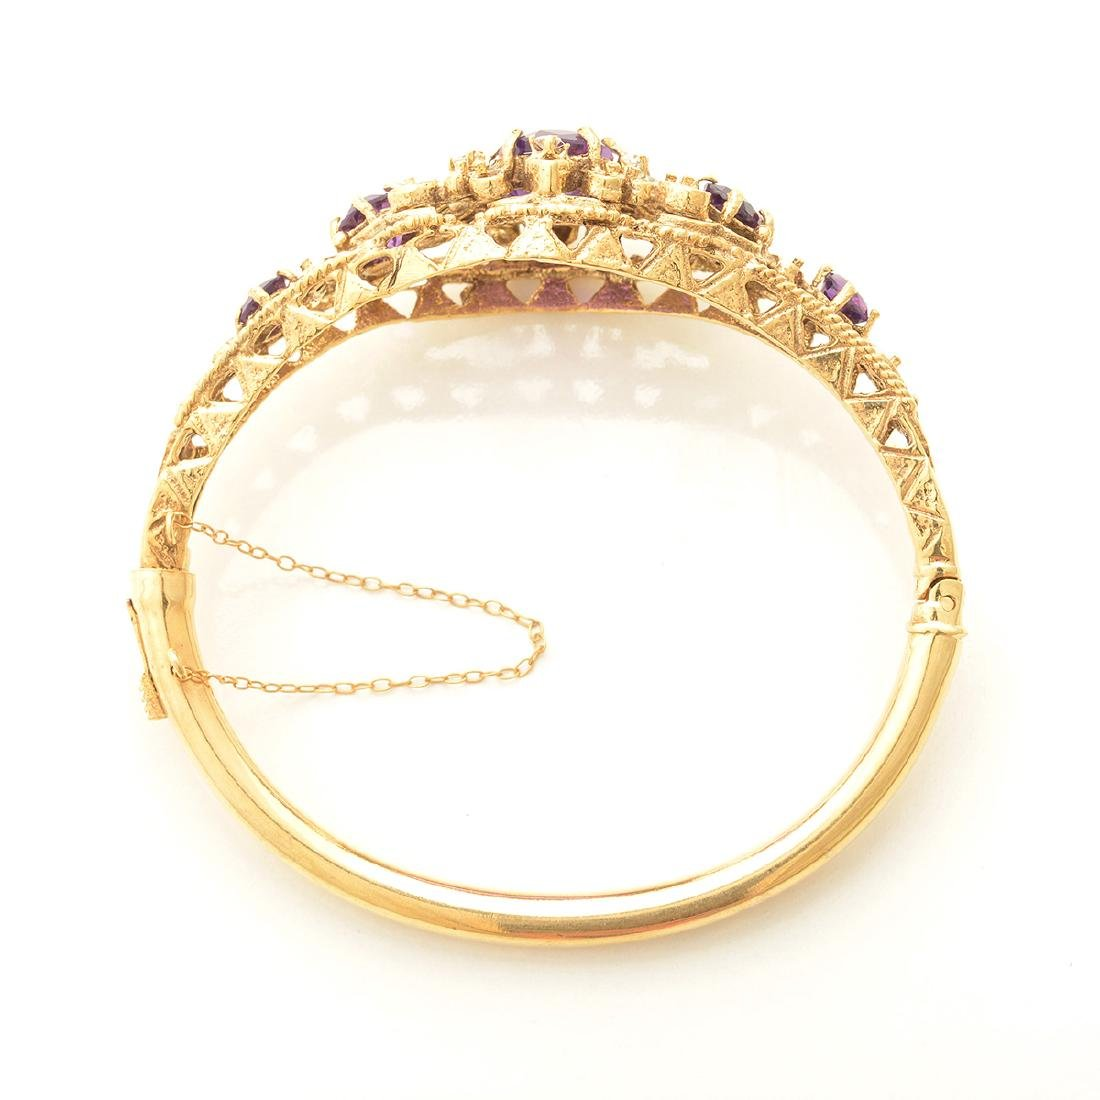 Amethyst, Diamond, 14k Yellow Gold Bracelet. - 3